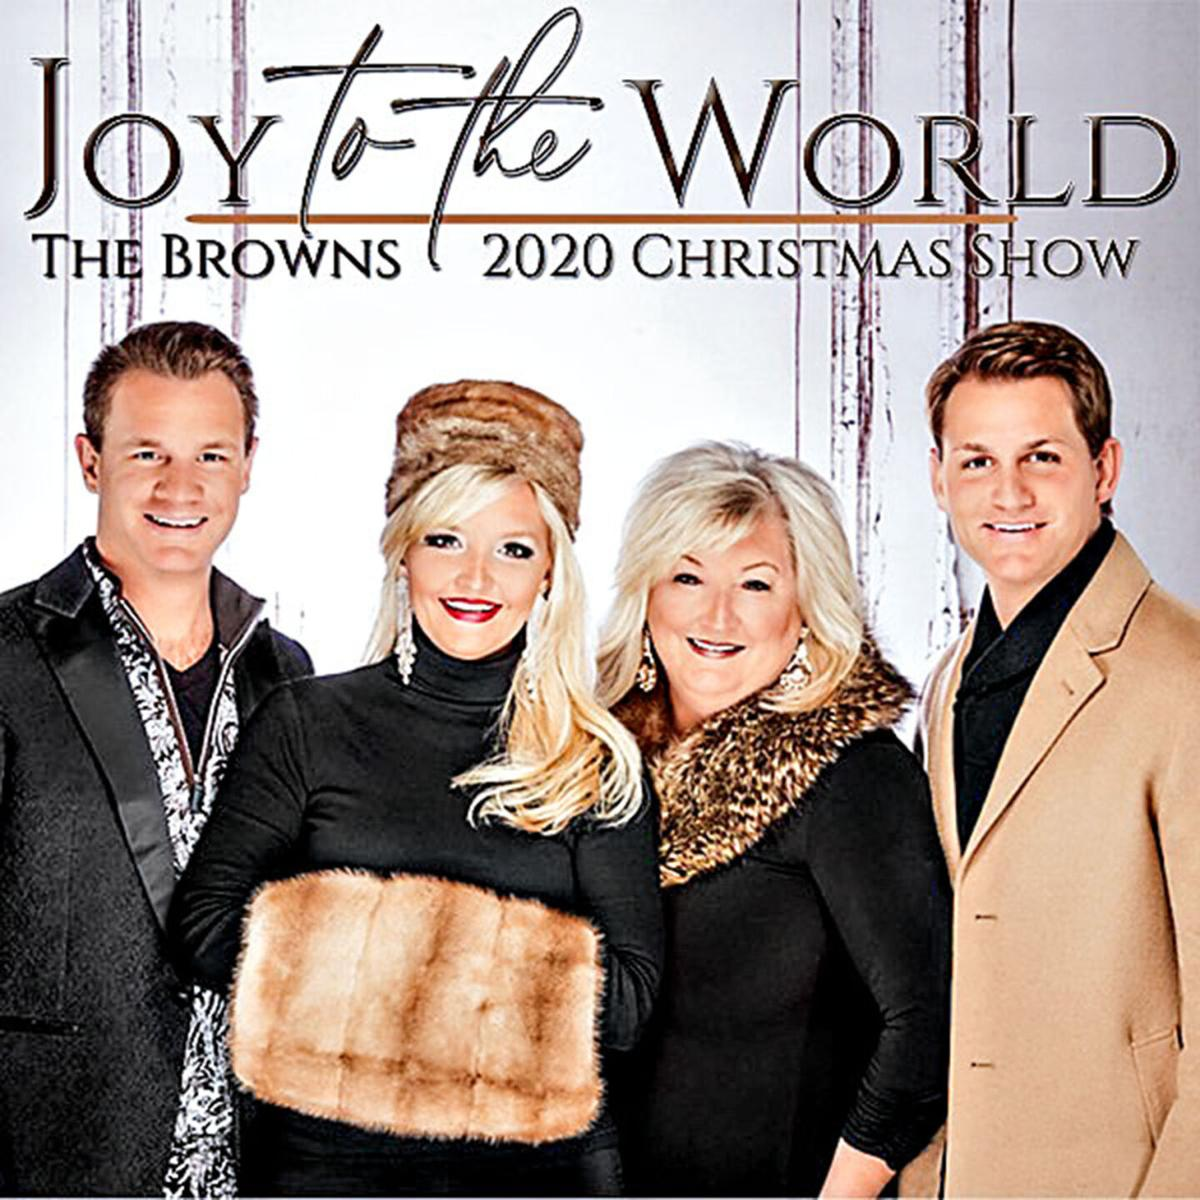 The Browns Christmas Show